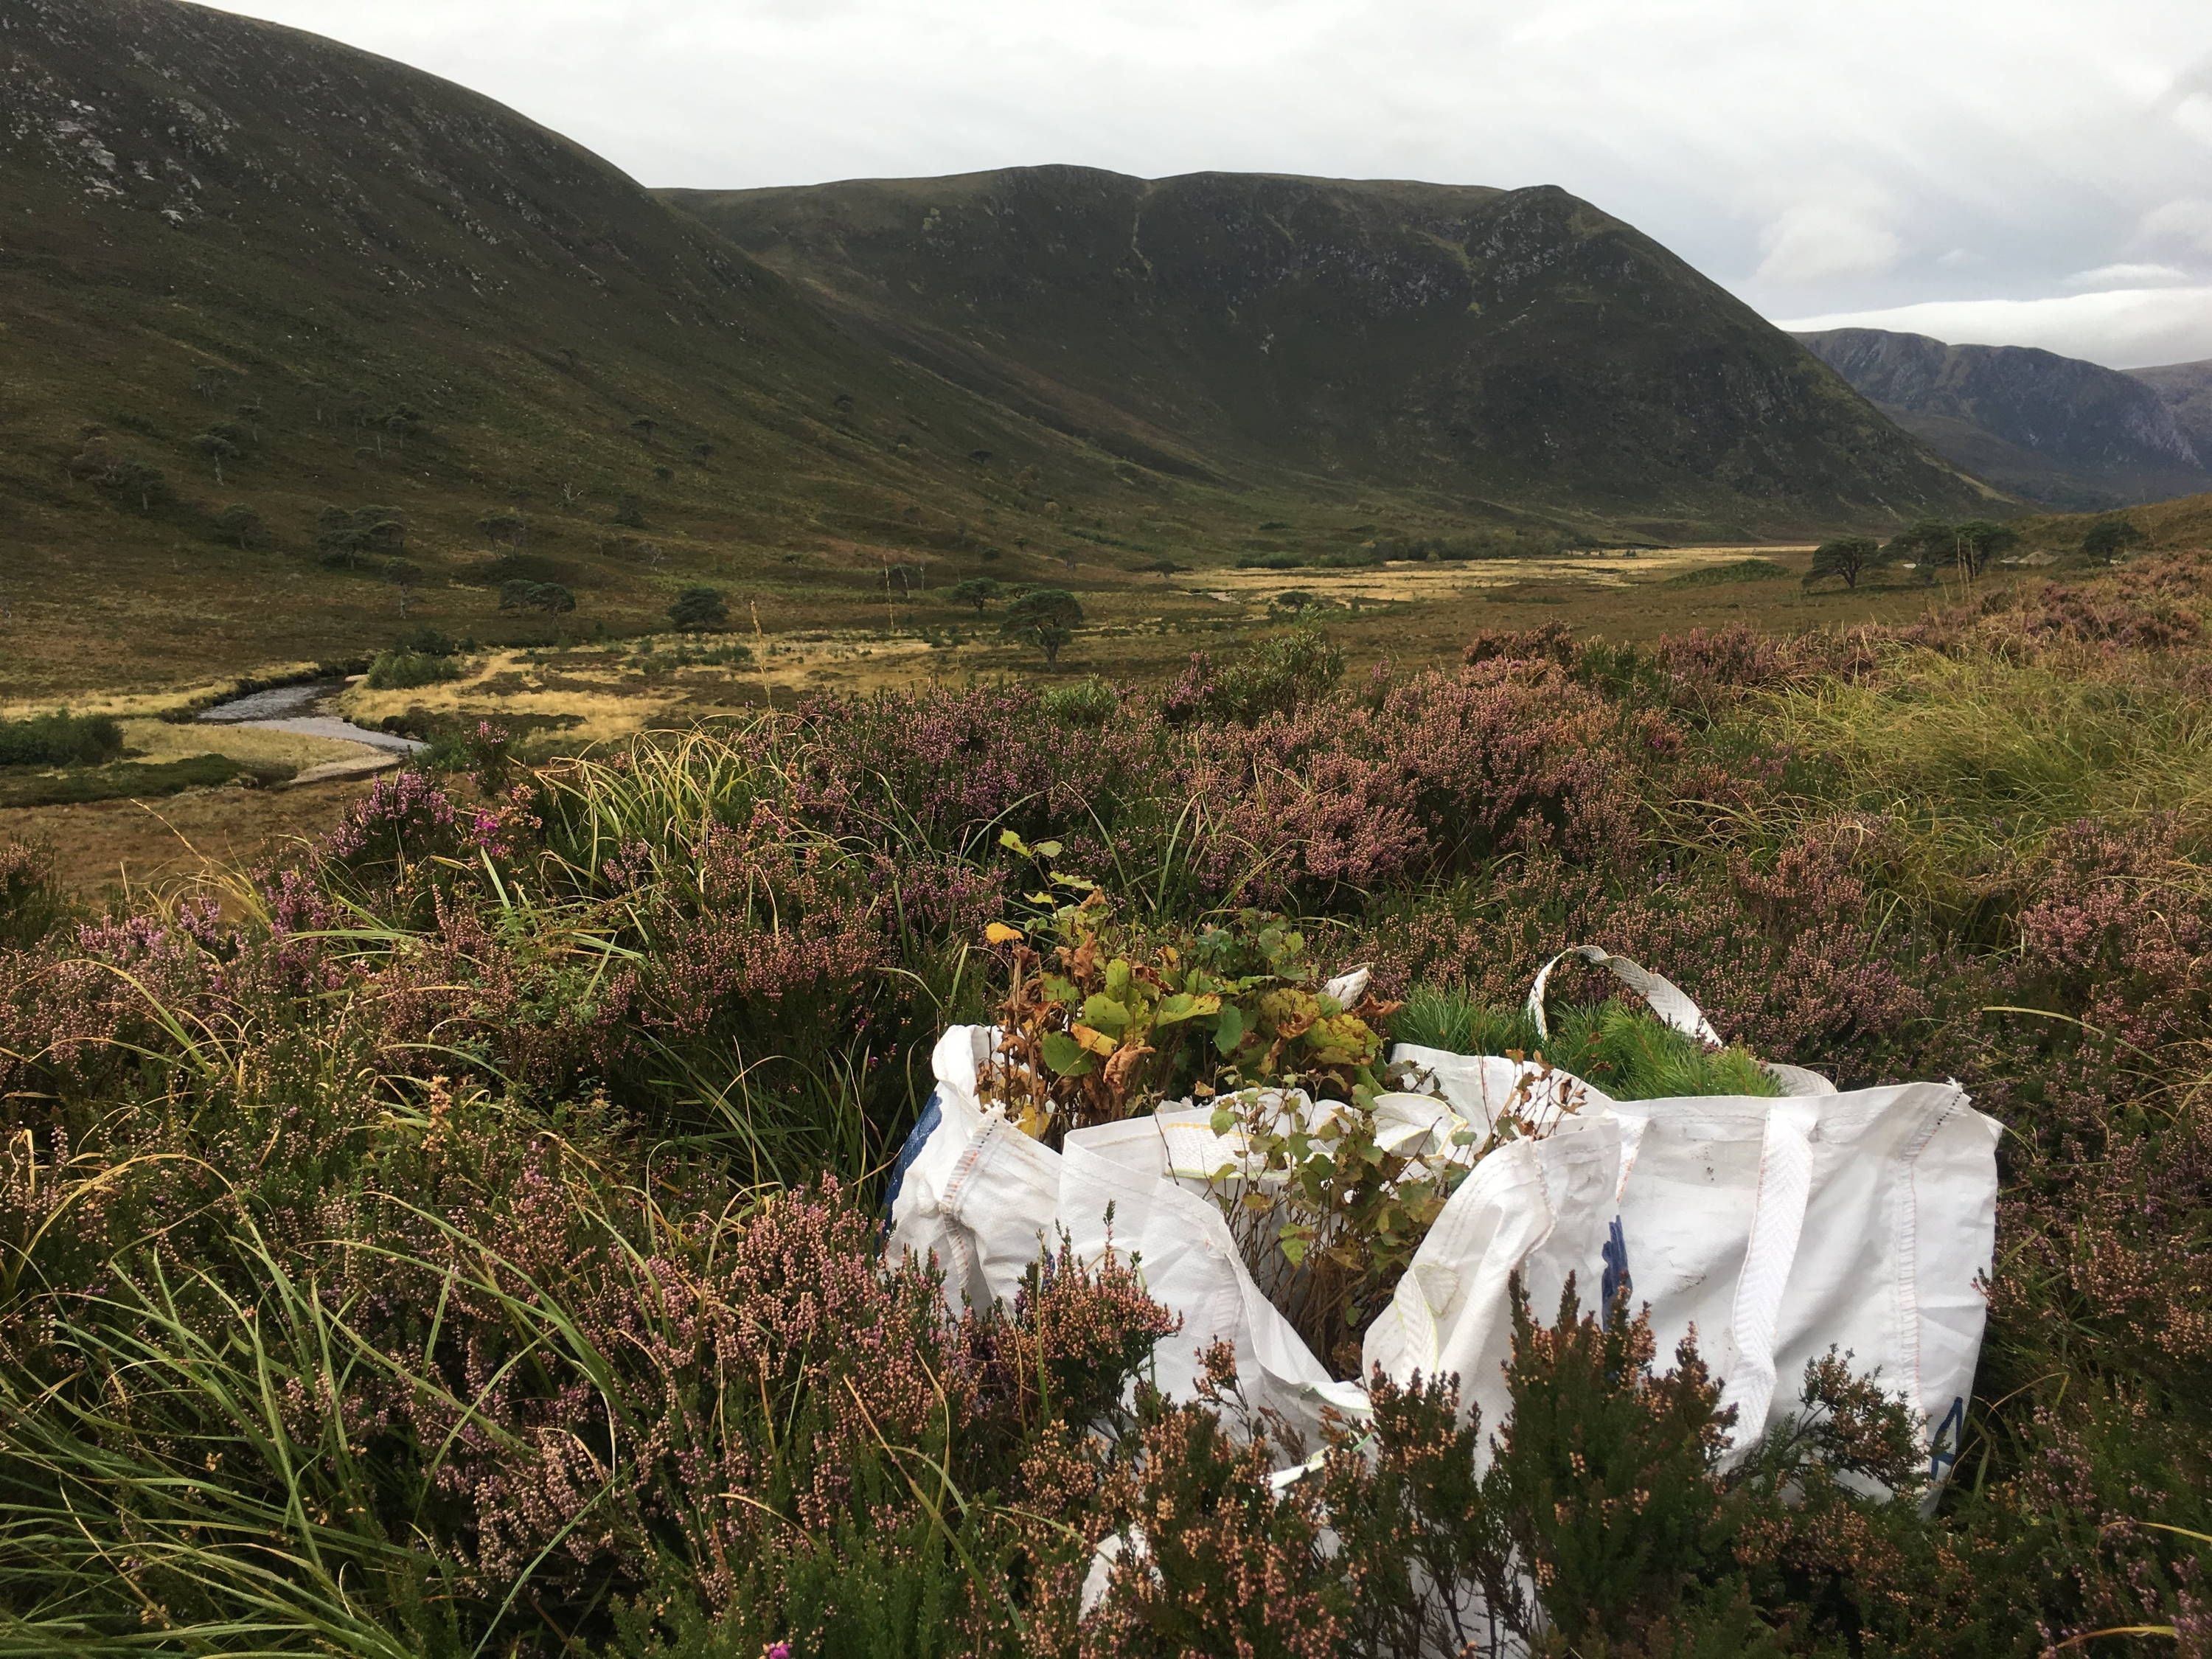 Bags of saplings of a variety of spaces lie waiting among the blooming heather to be planted